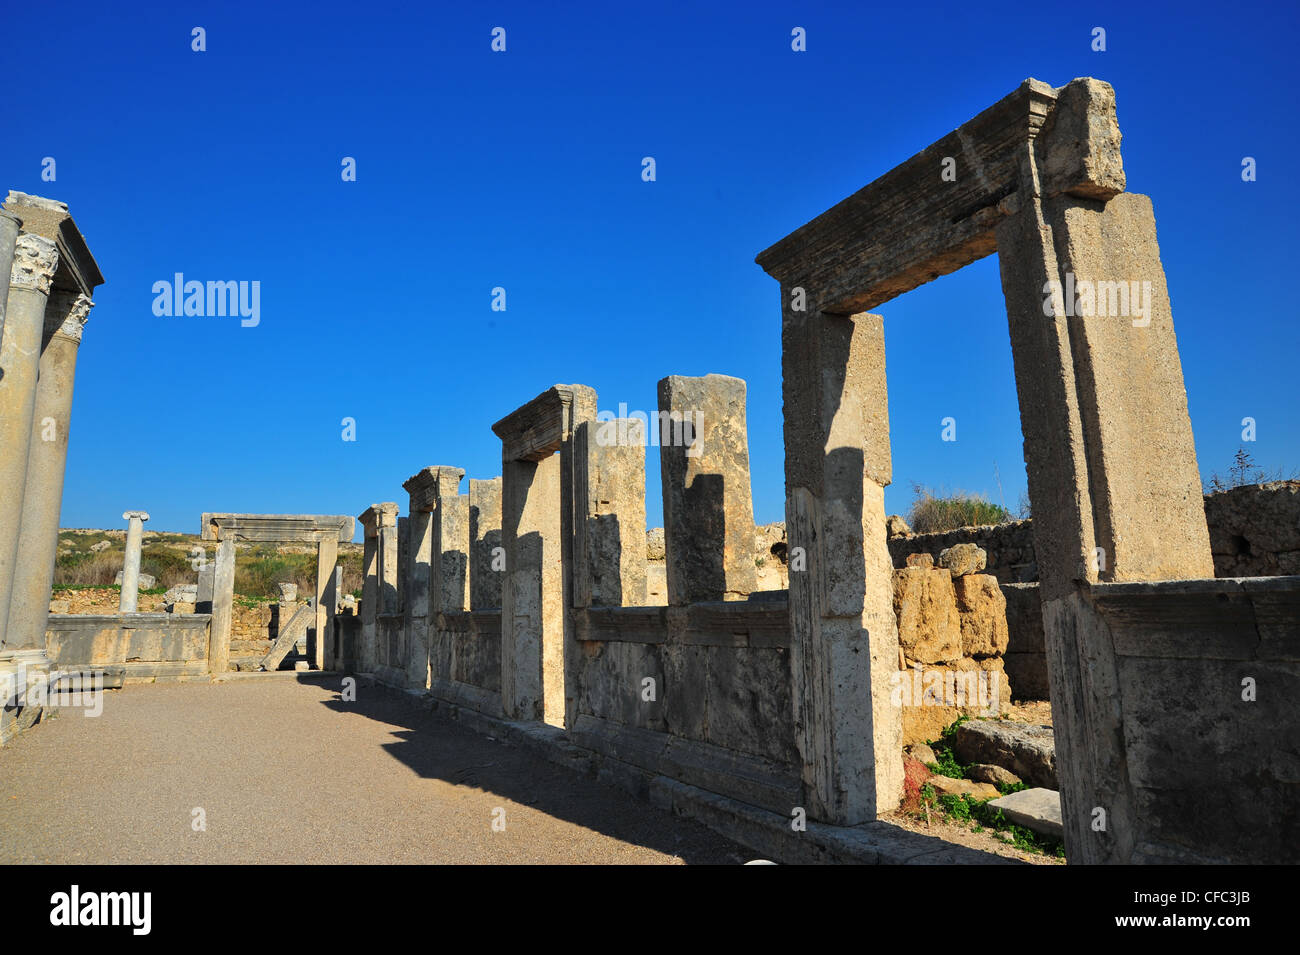 Images of the ancient city of Perge in the Antalya area of ...